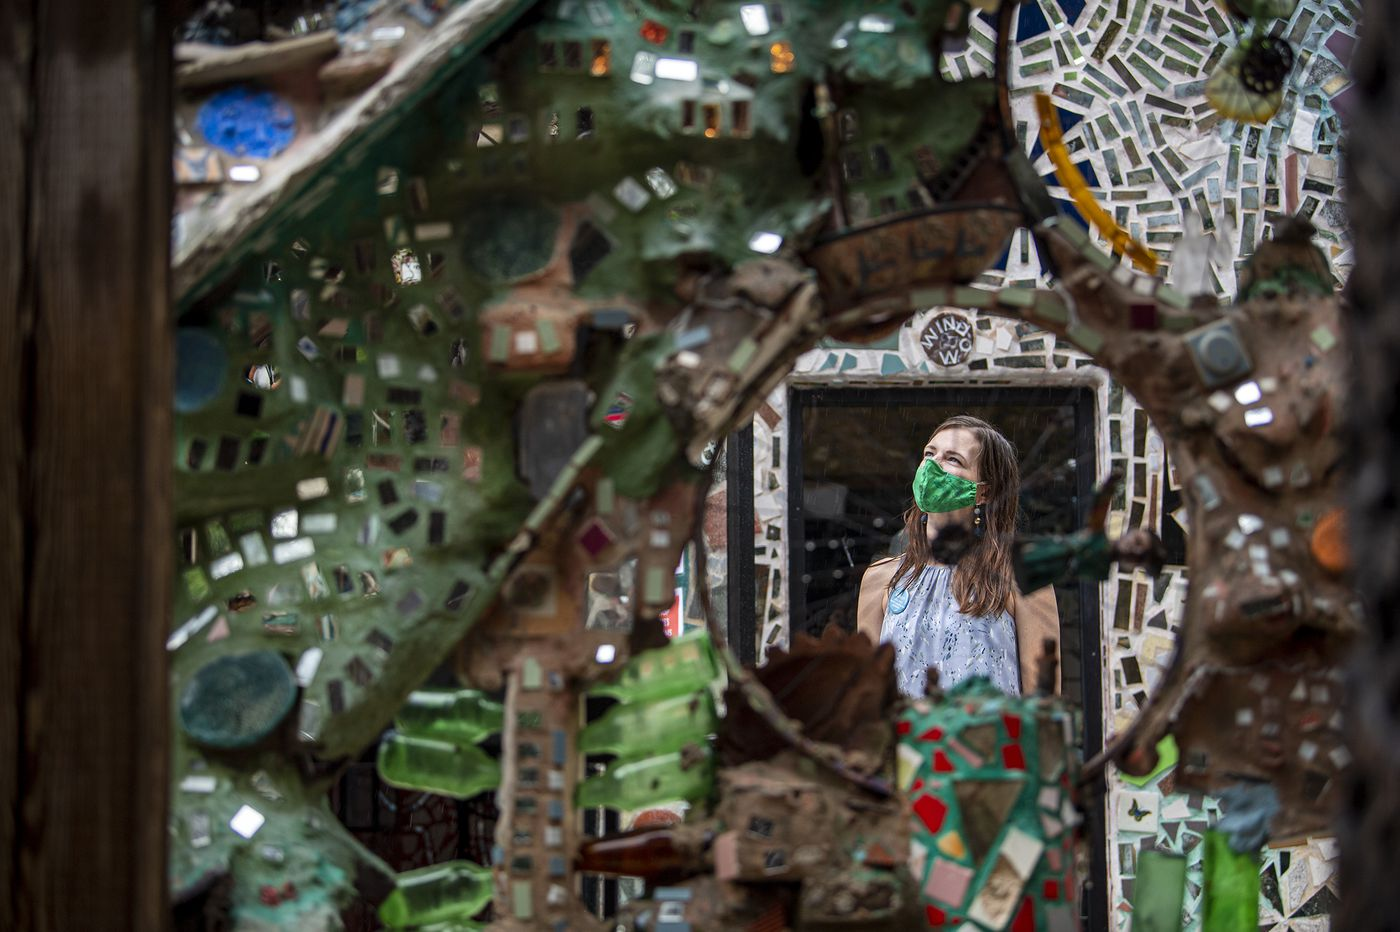 Magic Gardens reopens with new rules